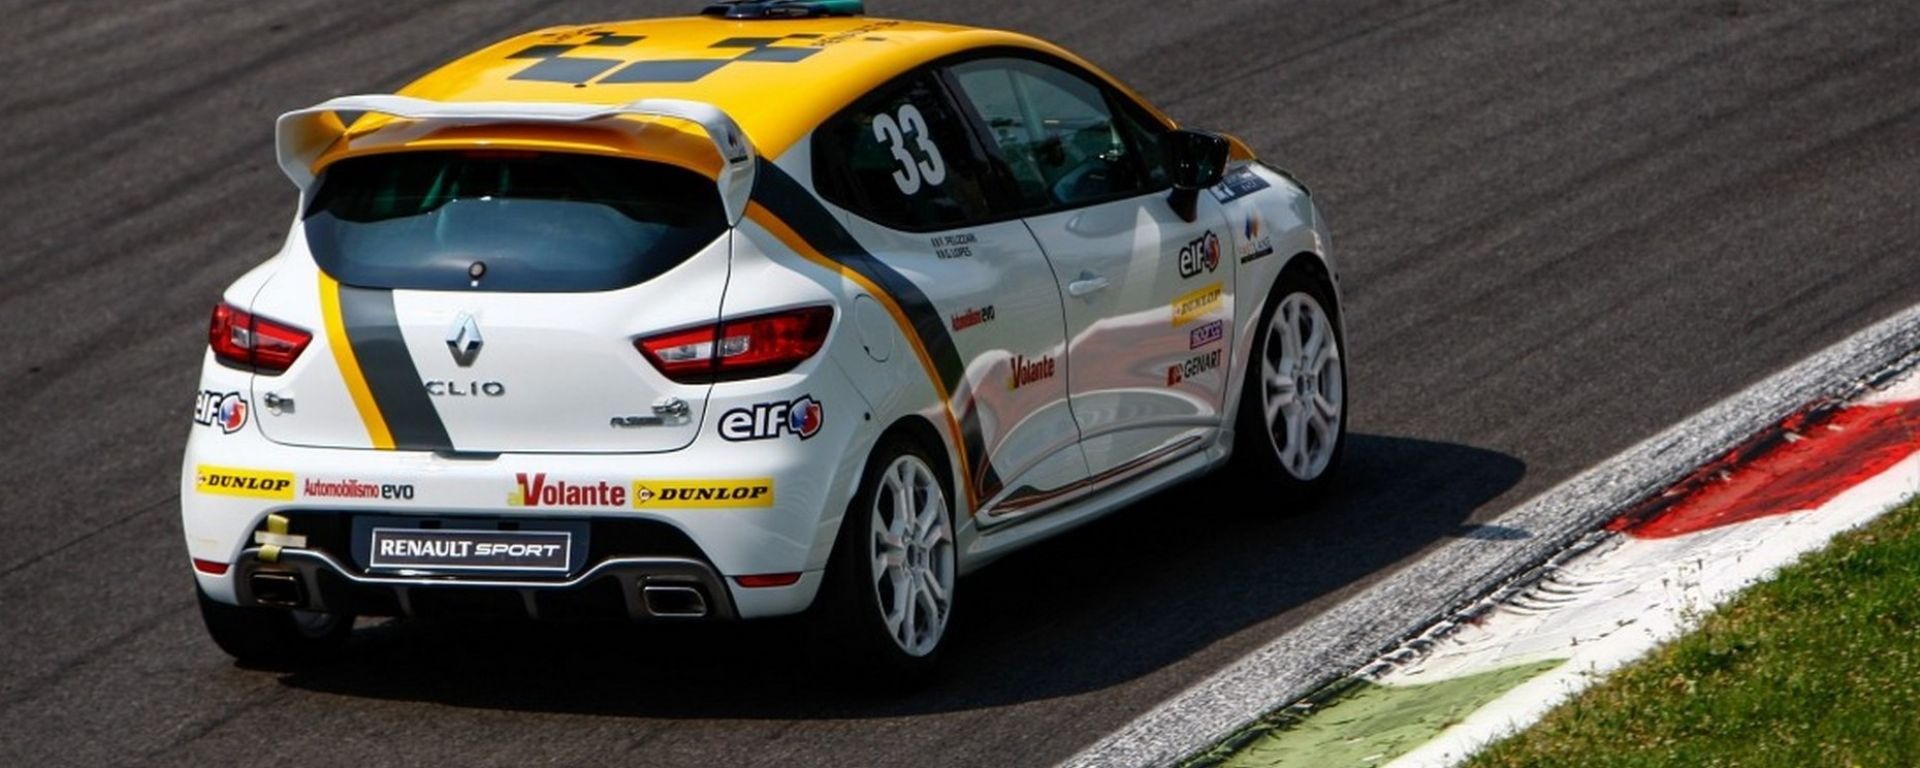 Renault Clio Cup 2018: il test in pista a Misano